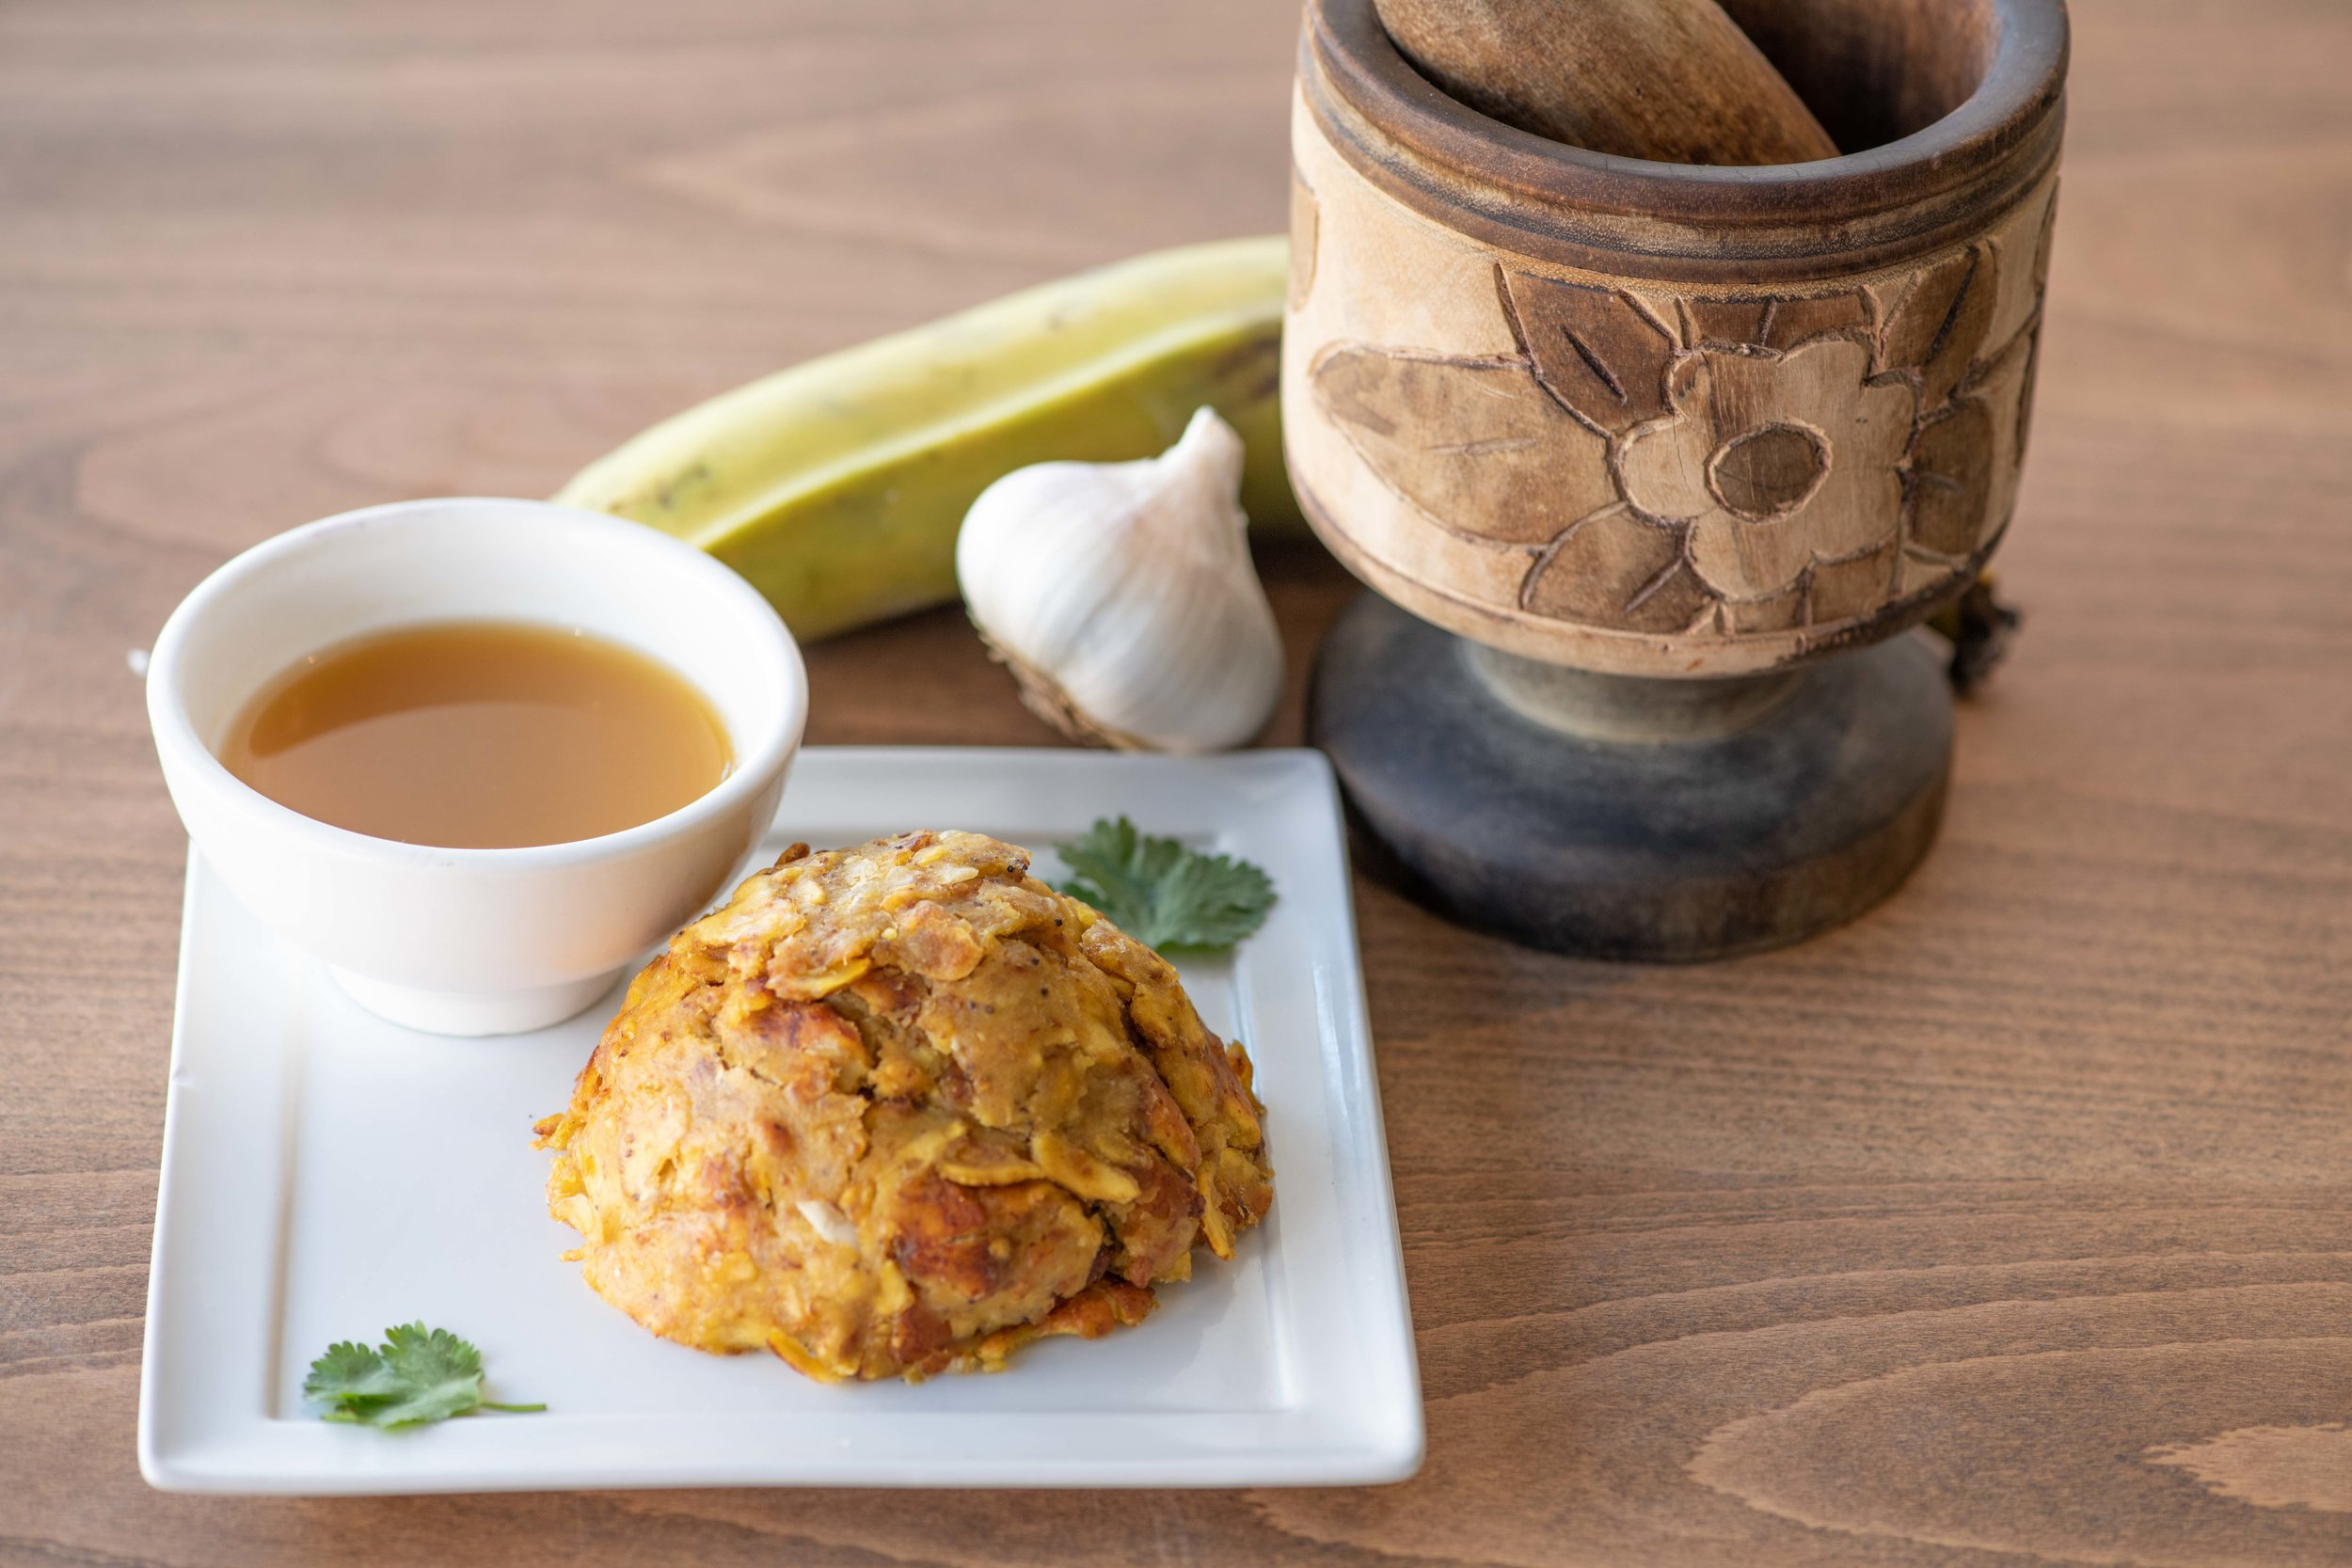 Mofongo with Pestle and ingredients